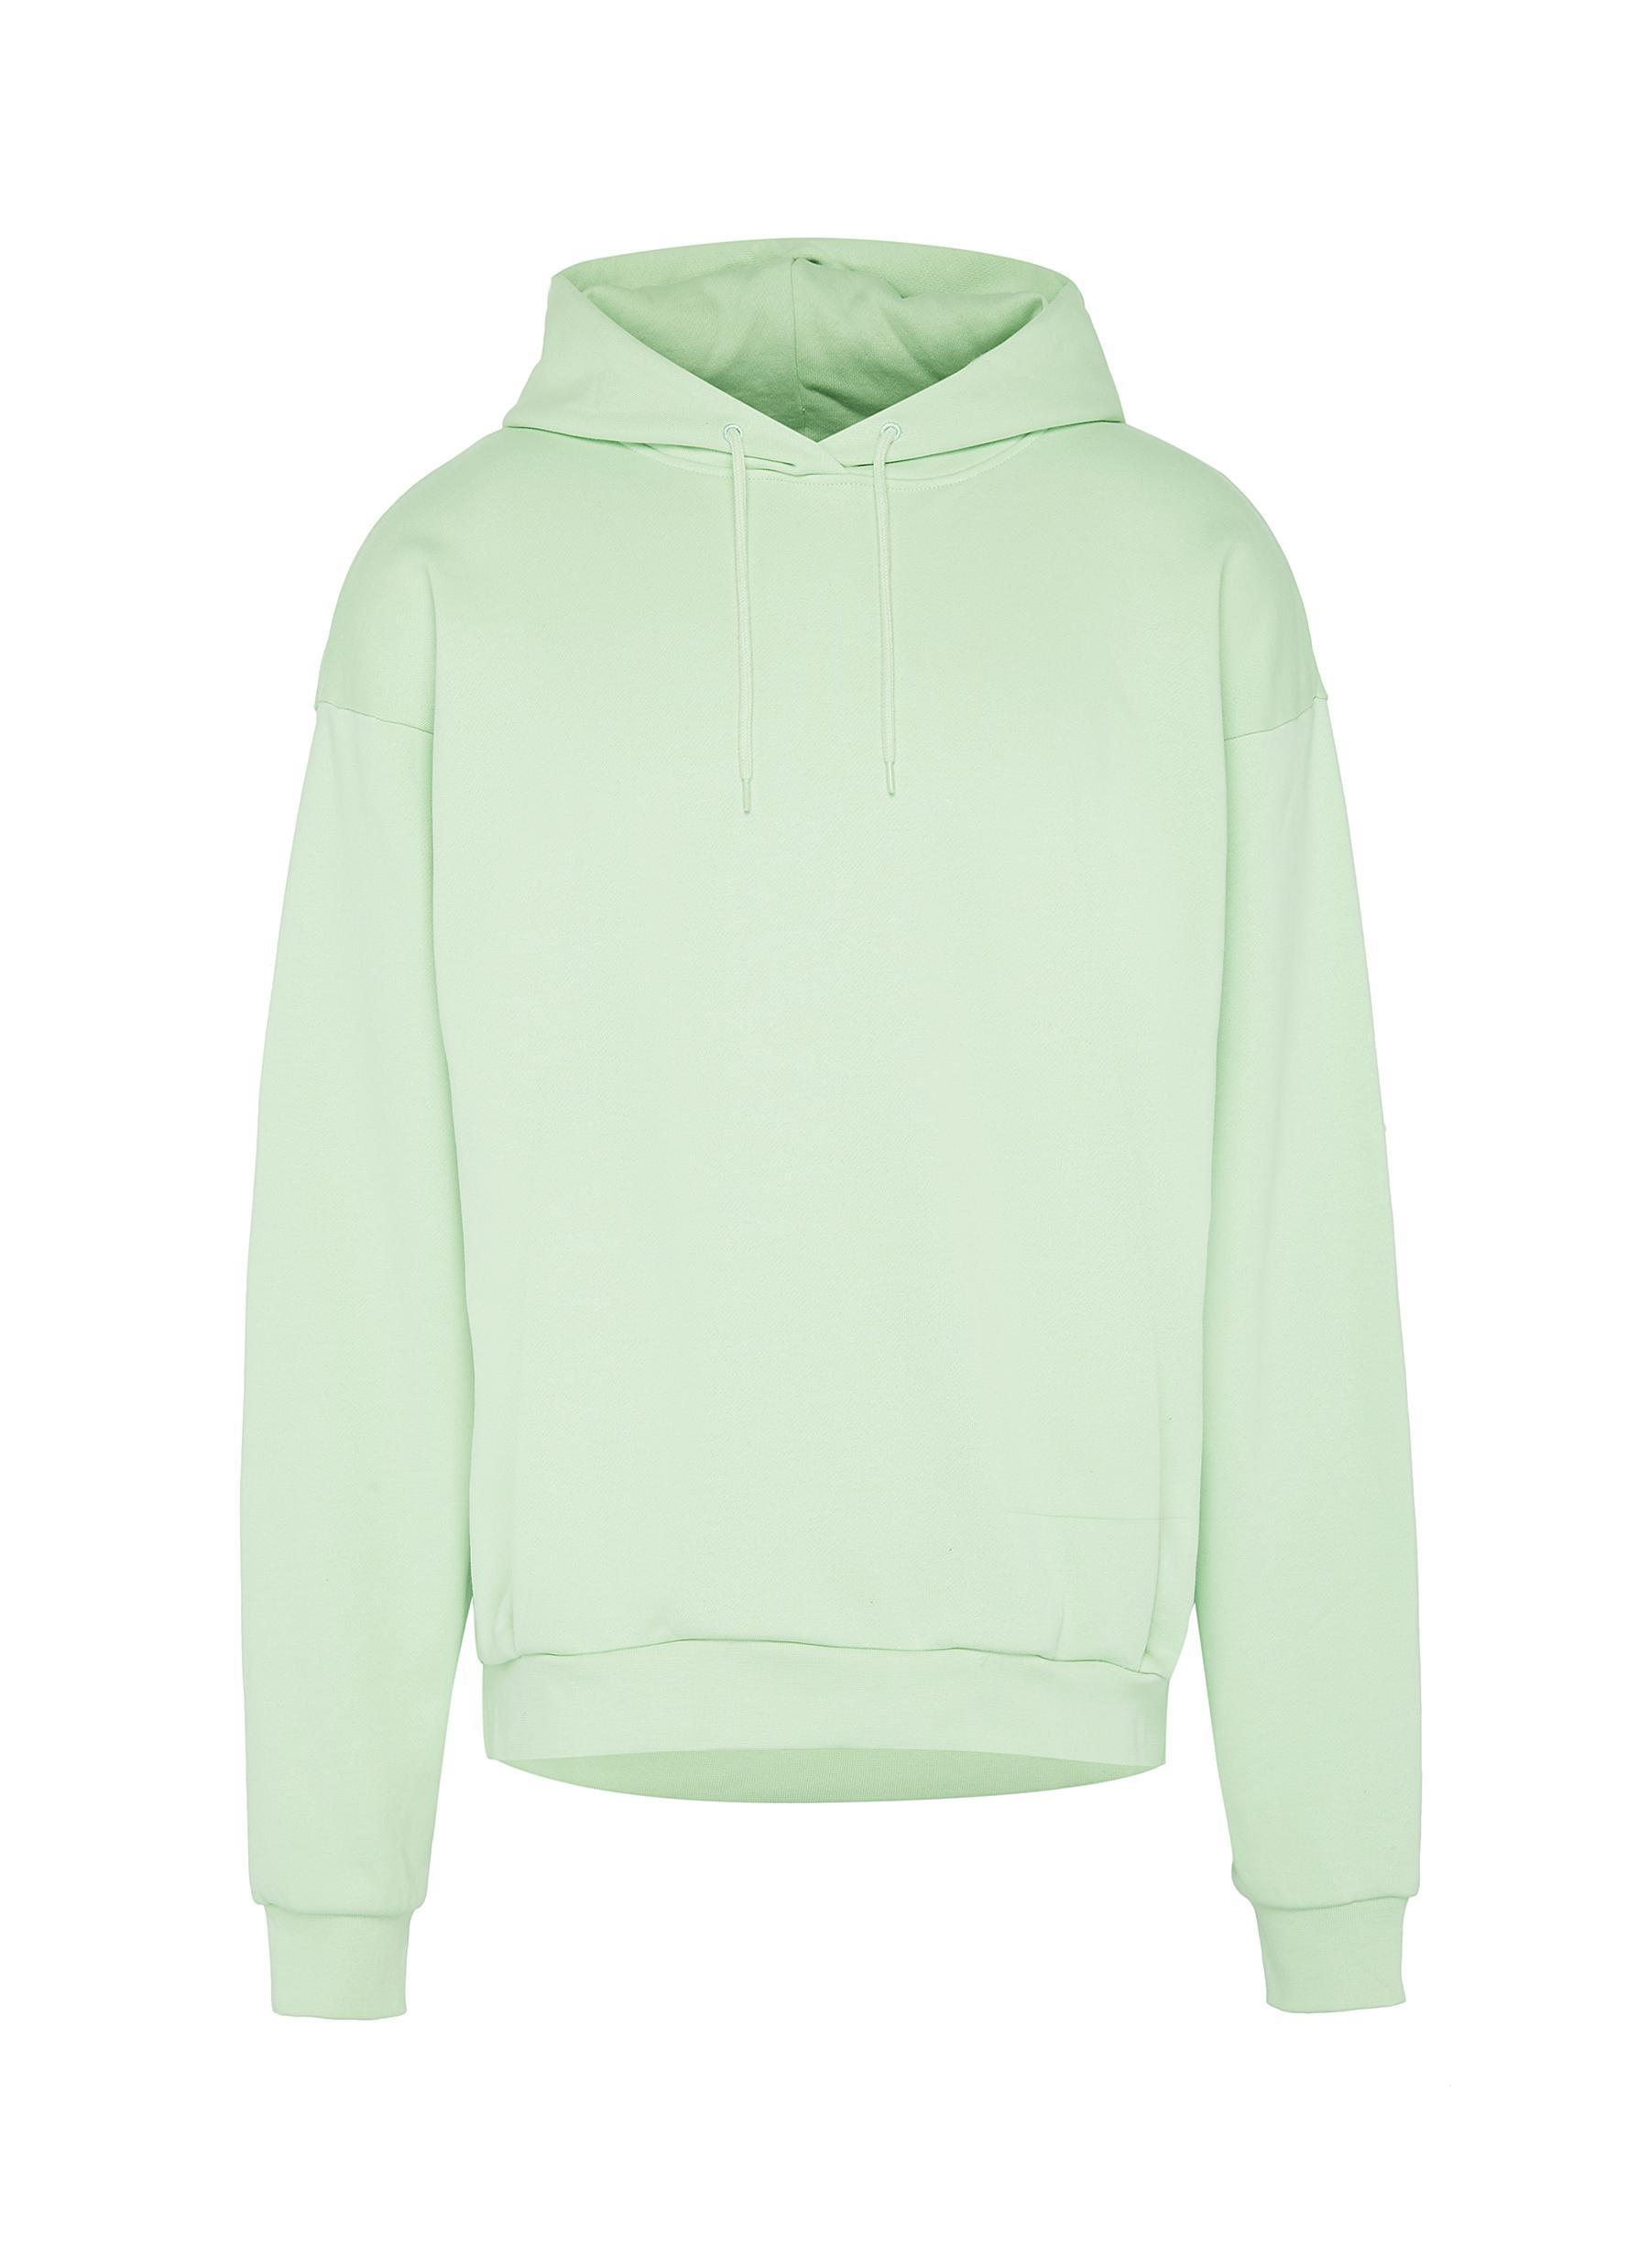 71ea8b12b Martine Rose Logo Embroidered Hoodie in Green for Men - Lyst